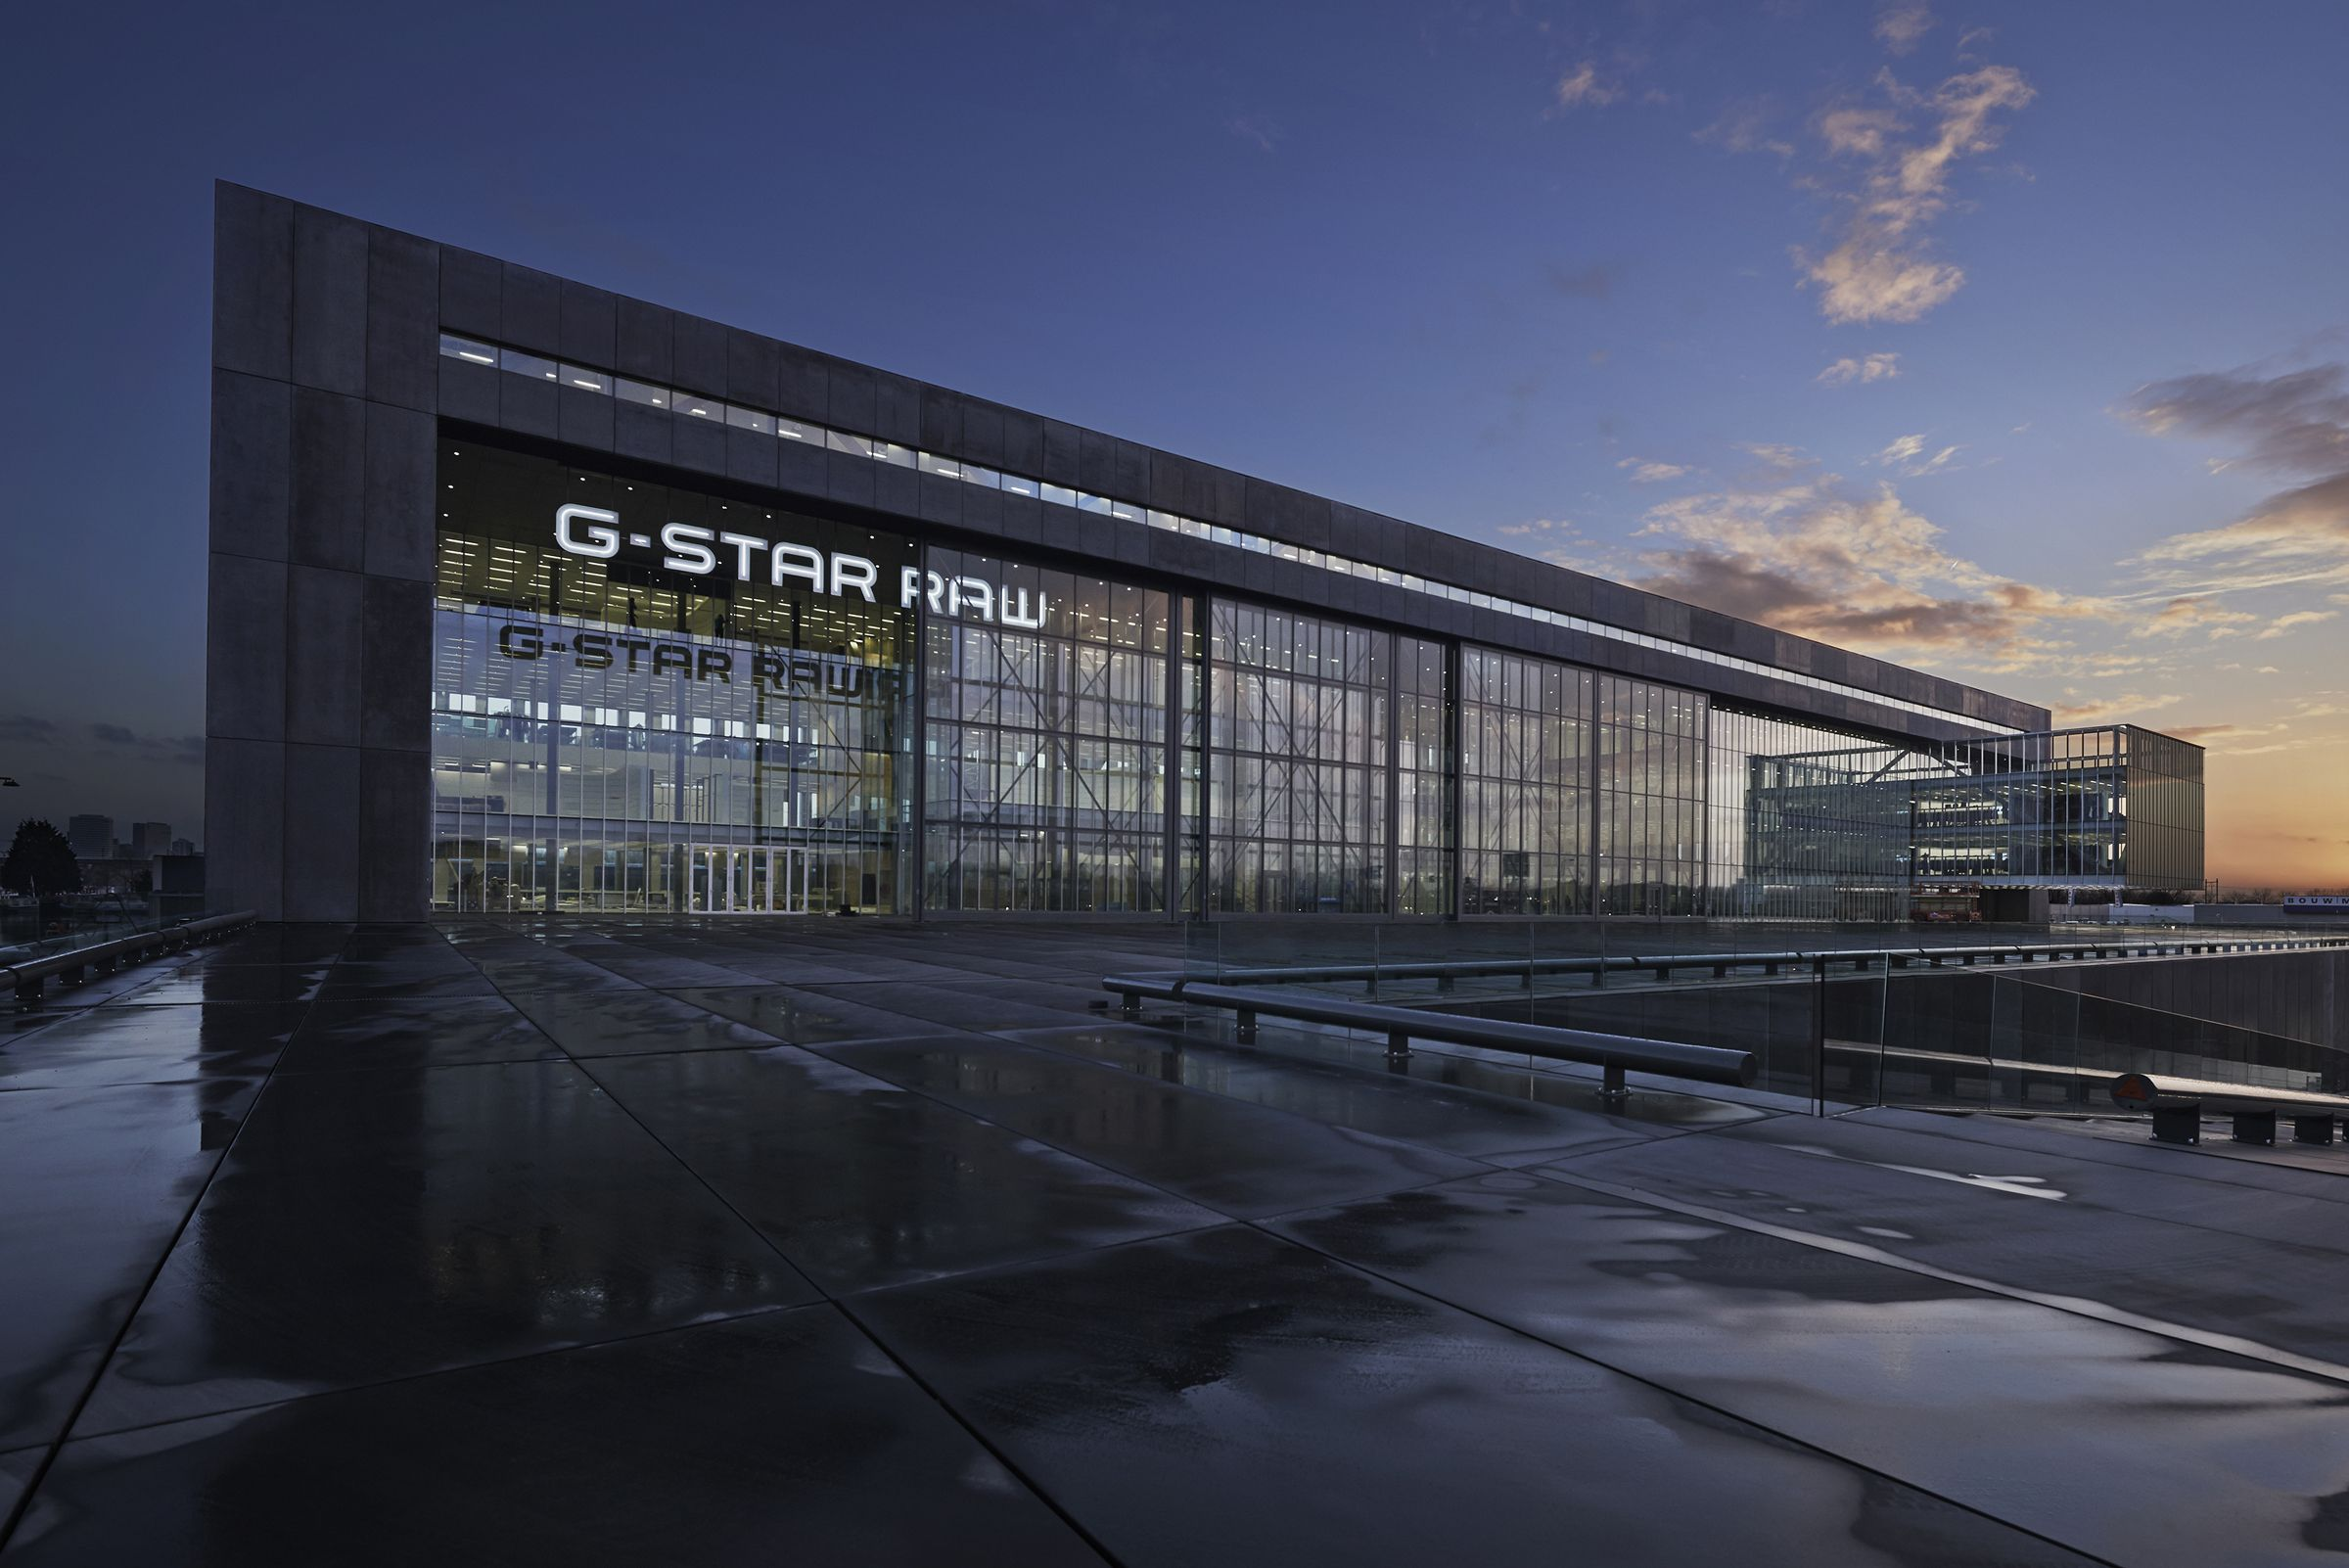 G-Star's Amsterdam headquarter